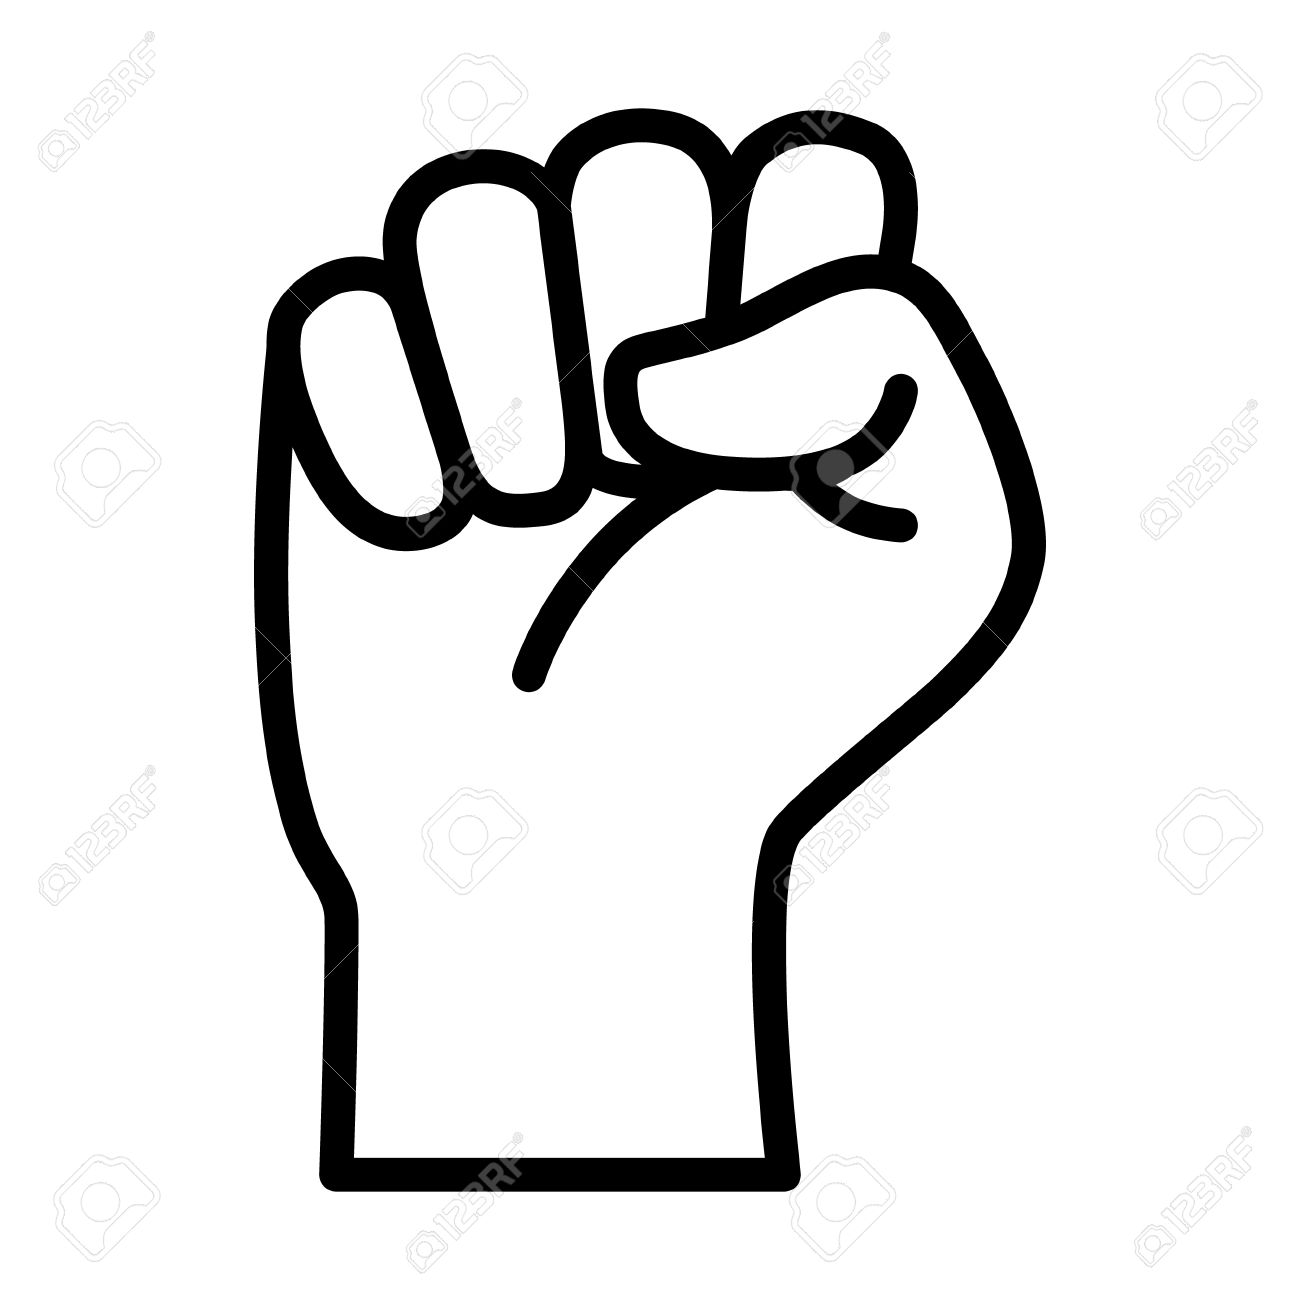 Fist clipart resistance. Free download best on